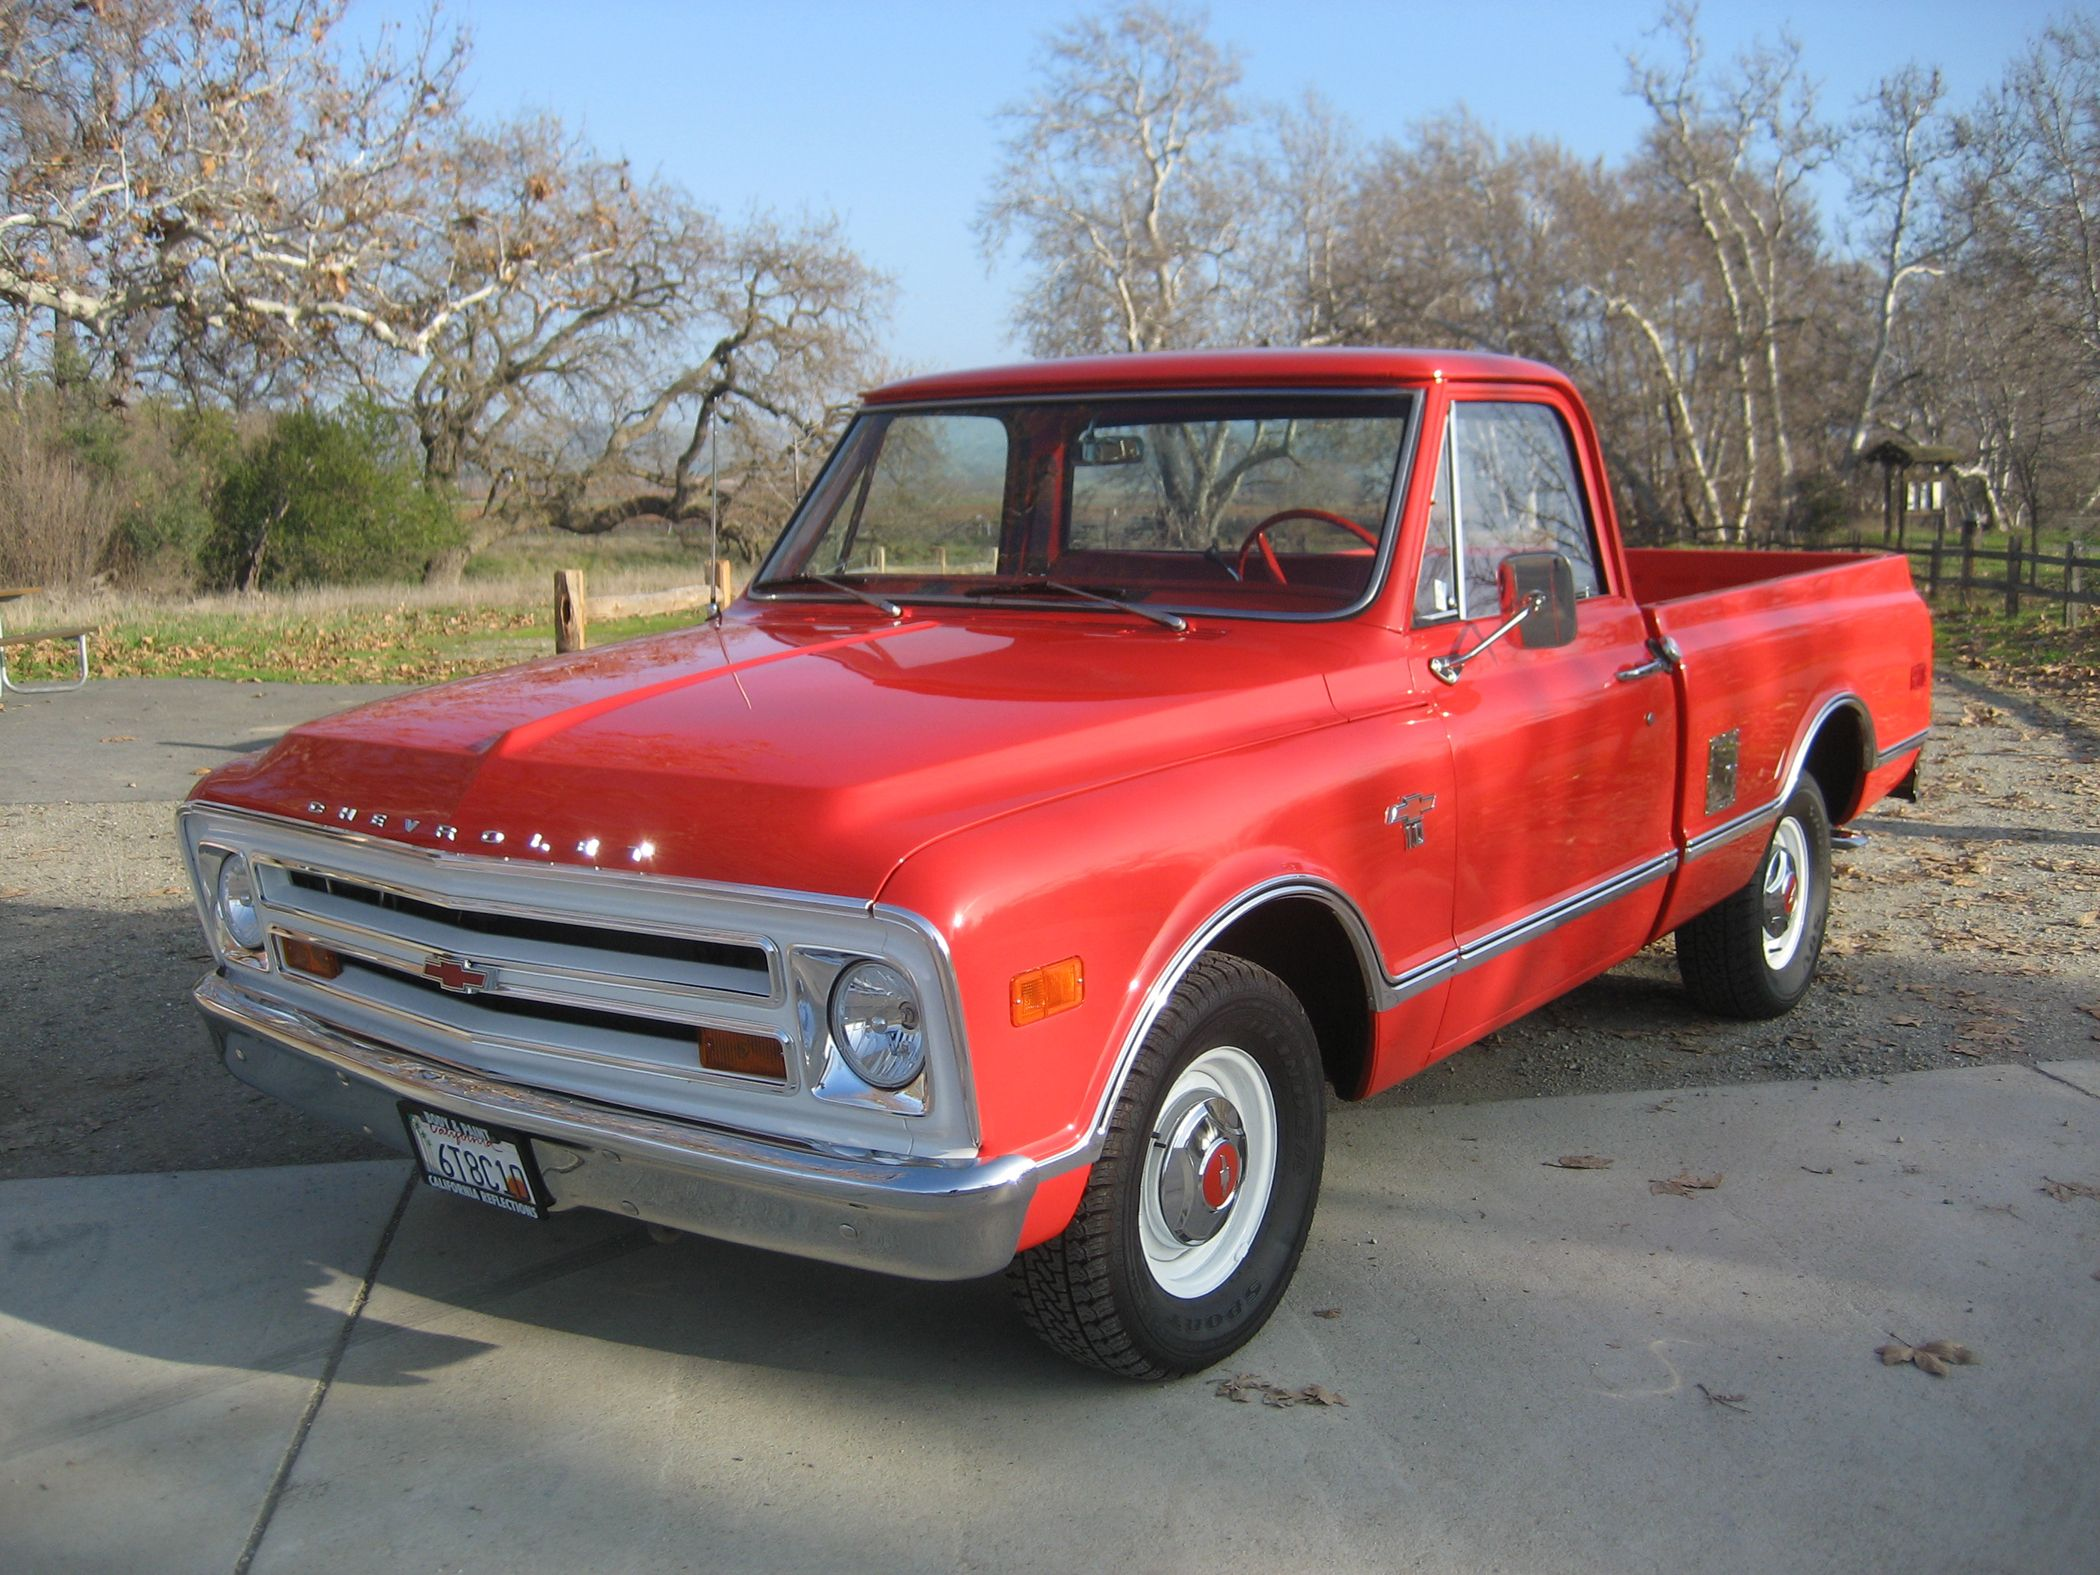 My Dad Drove A 68 Chevy Pickup Identical To This One For As Long